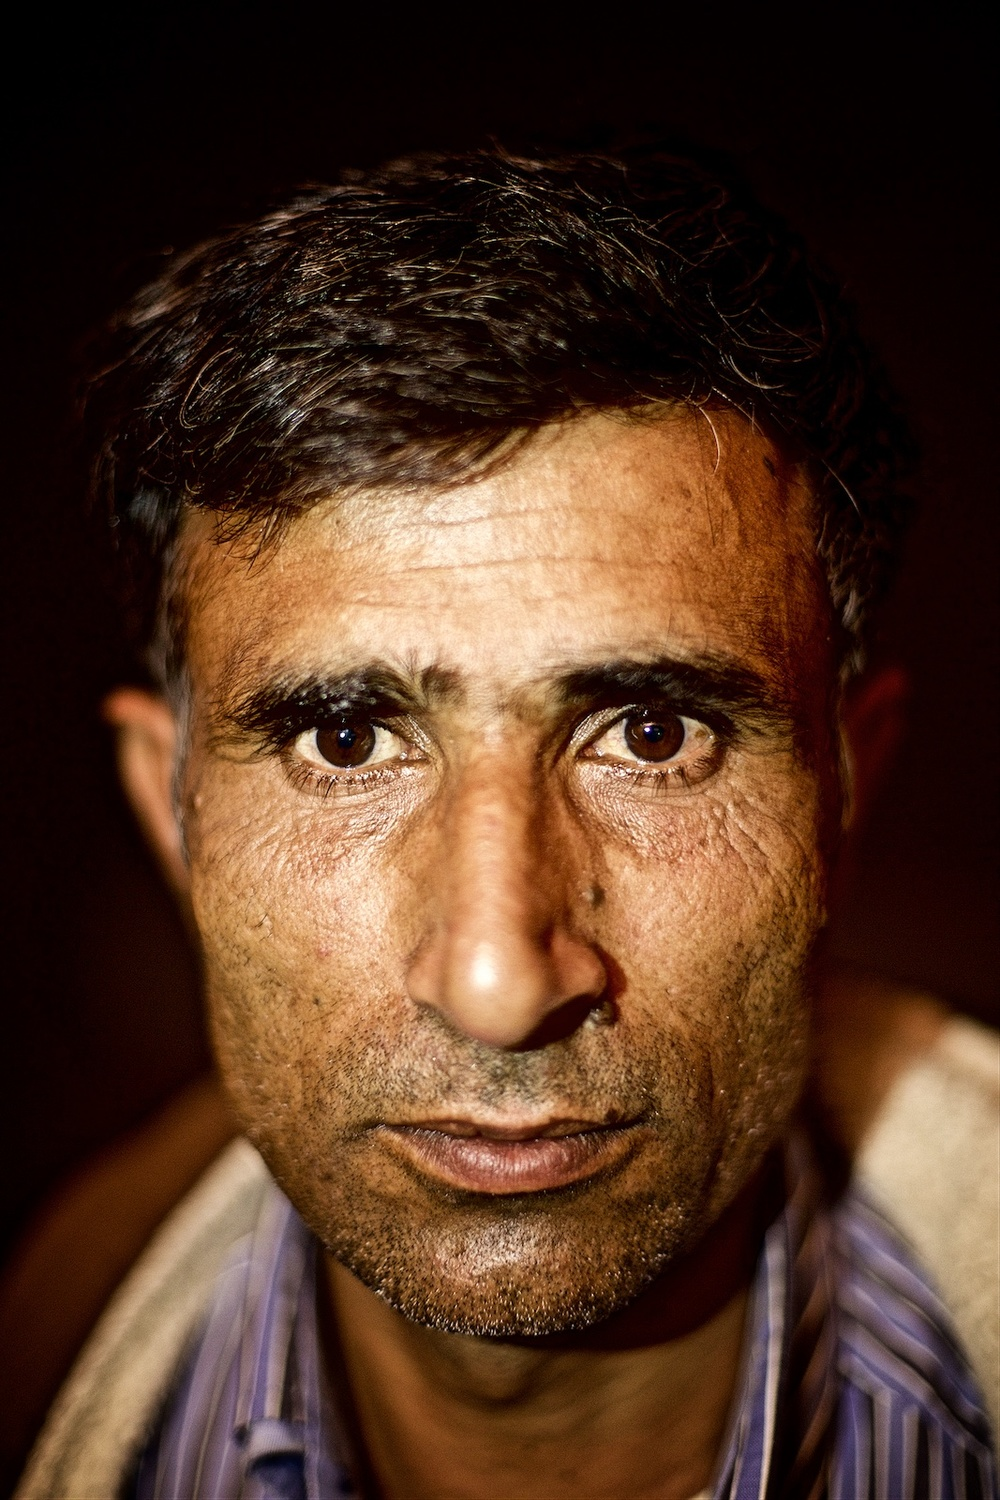 permanently-temporary-refugees-italy-rifugiati-italia-denis-bosnic-photography-portraits-5 (1).jpg